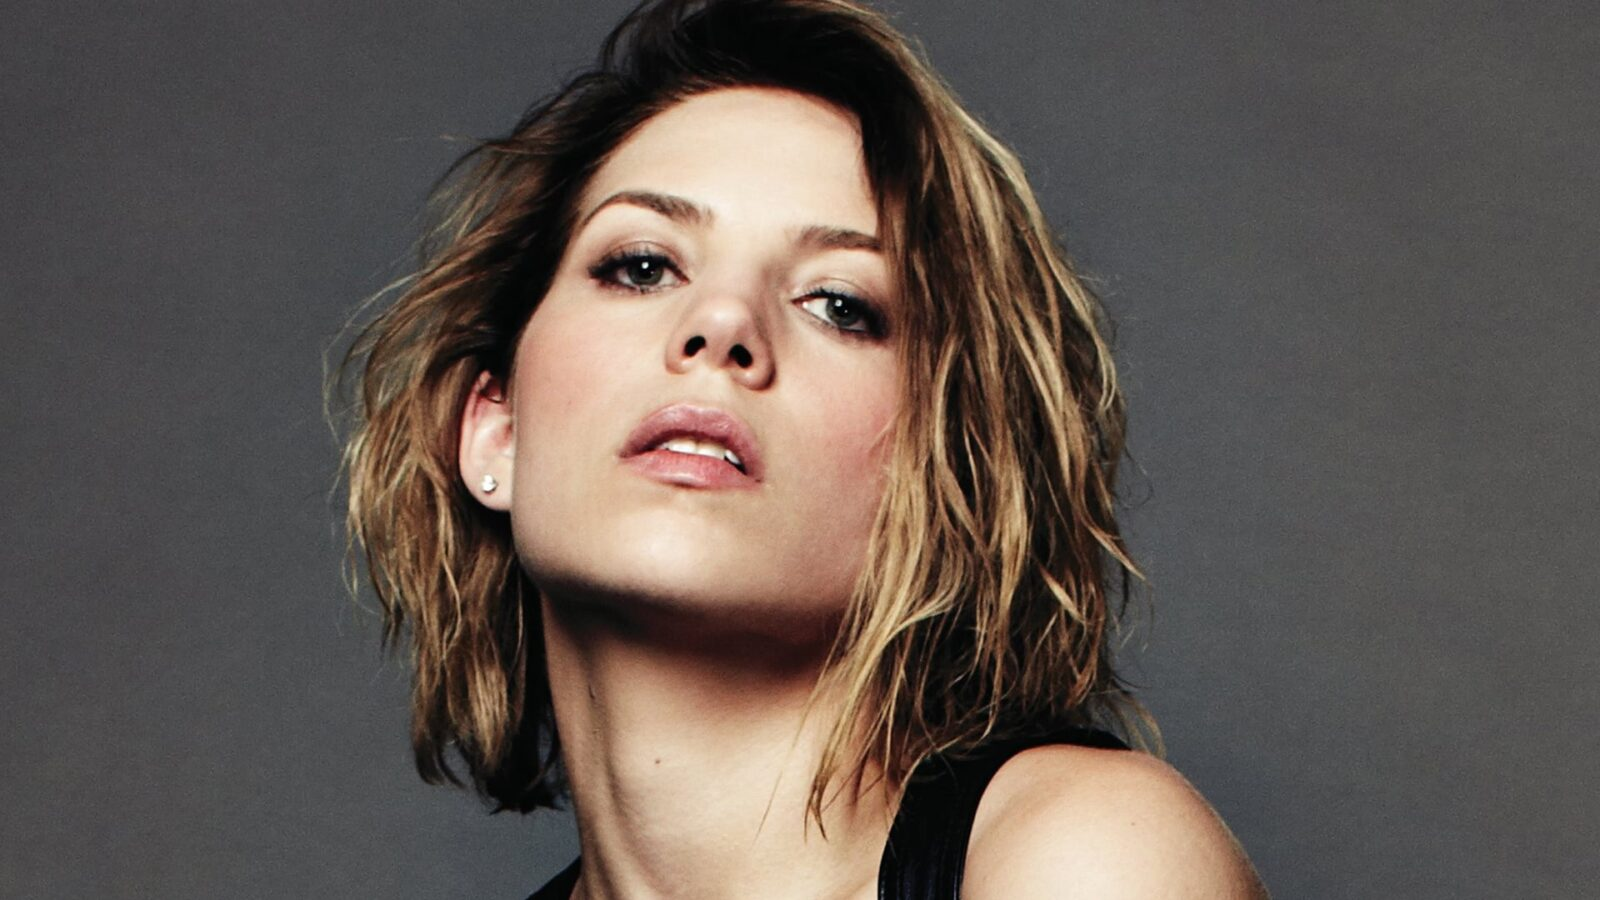 skylar grey hd wallpapers high quality